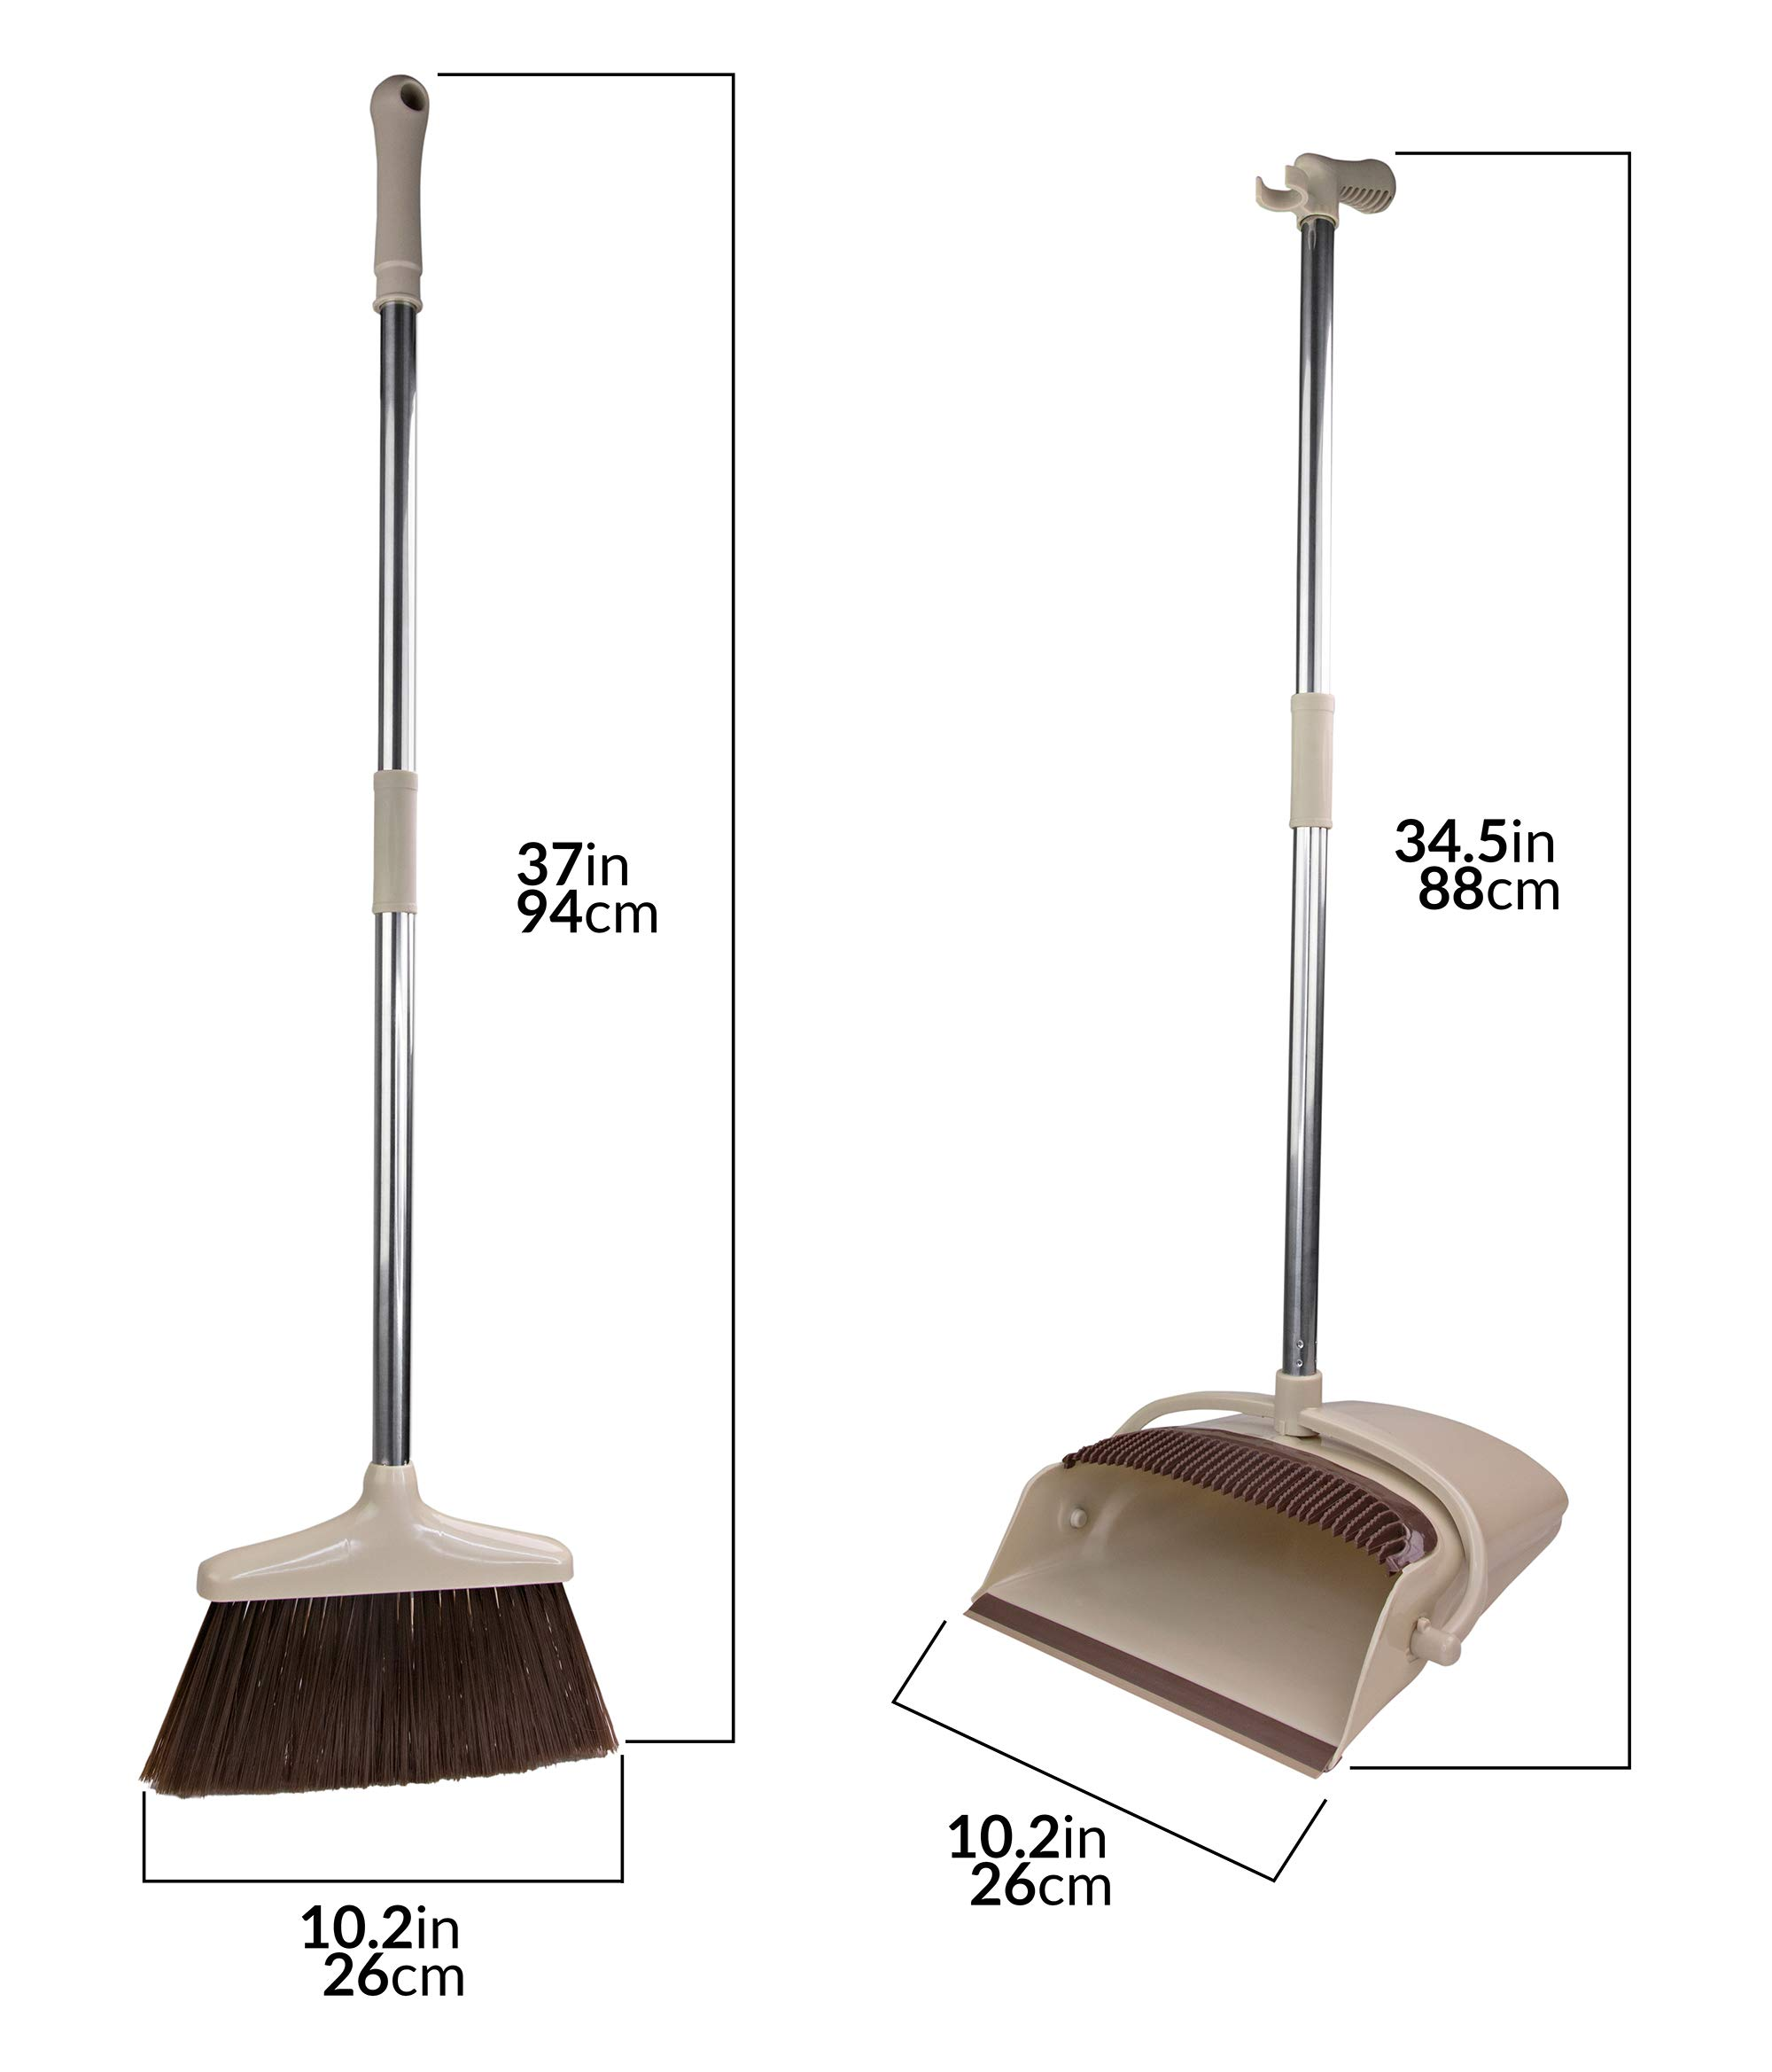 Broom and Dustpan Set [2019 Version] - Stand Up Brush and Dust Pan Combo for Upright Cleaning - Remove Hair with Built-in Wisp Scraper - Kitchen, Outdoor, Hardwood Floor & Garage Tiles Clean Supplies by Belleford (Image #6)